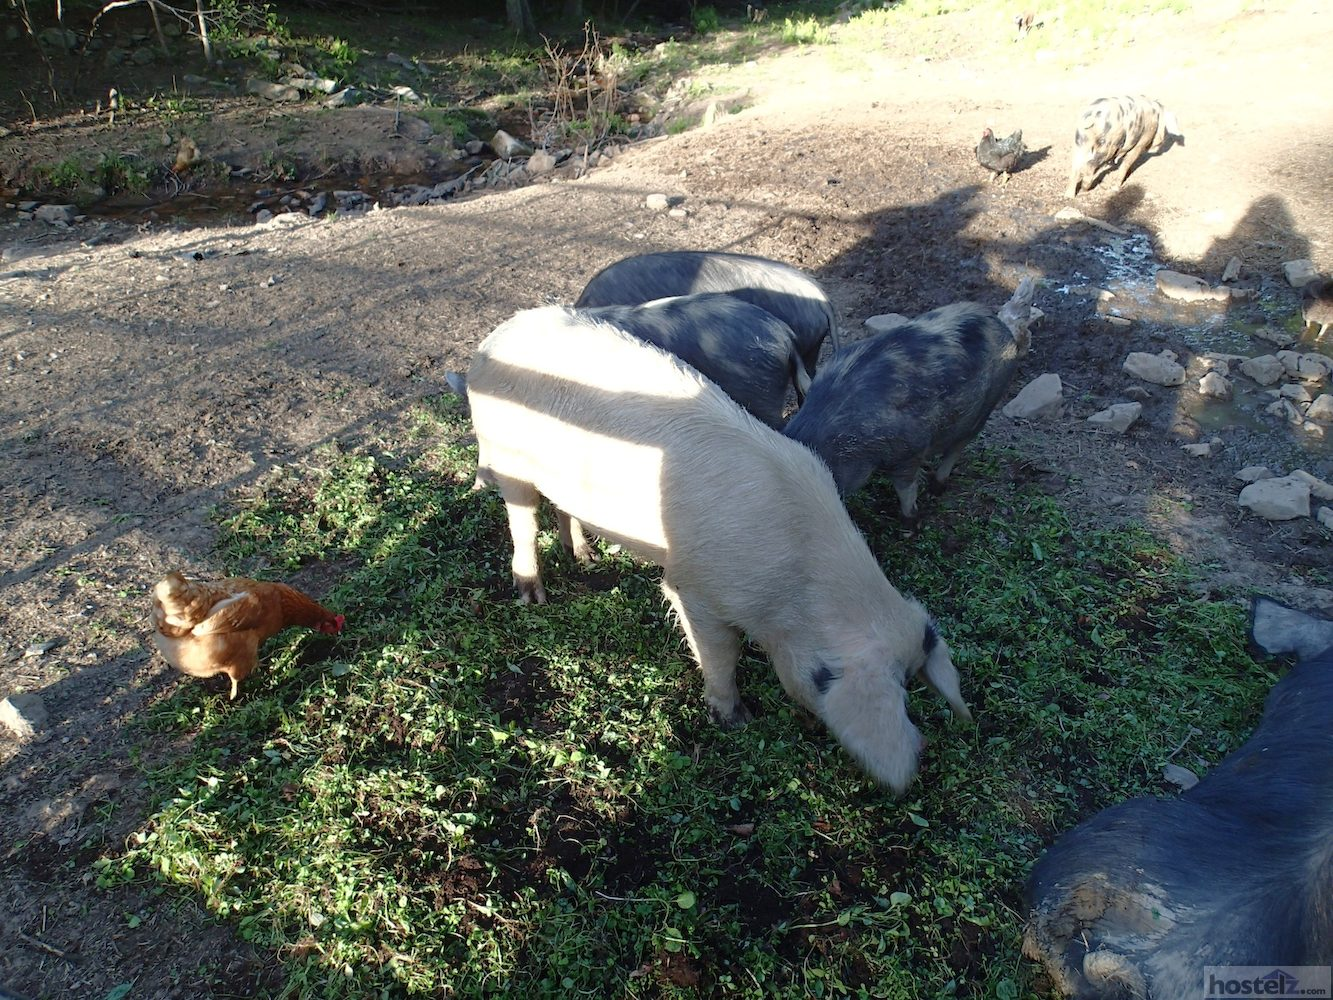 Pigs and chickens are raised at the hostel.